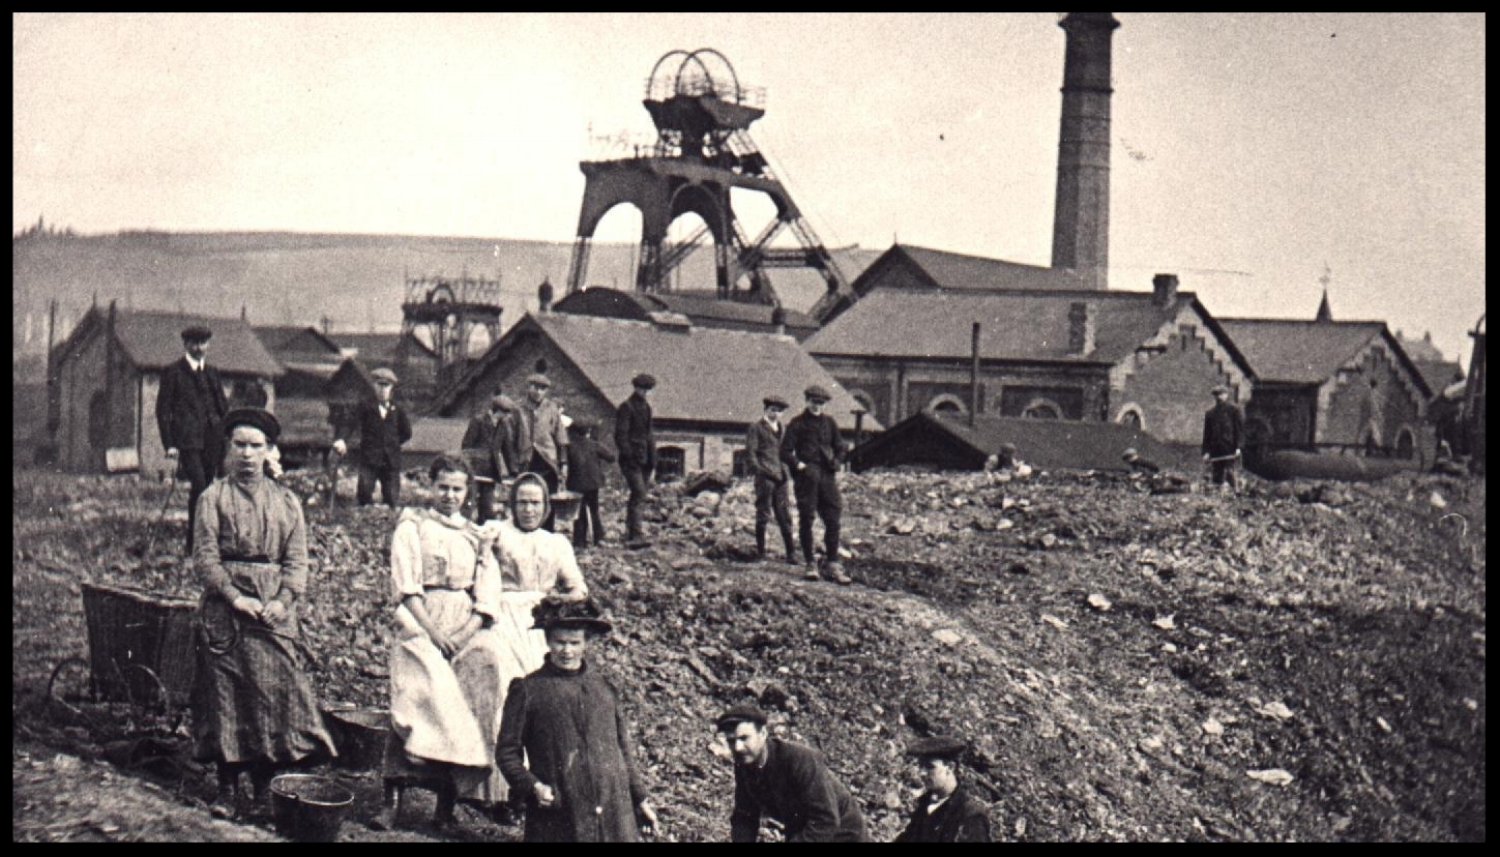 Wimblebury Colliery Staffordshire around the turn of the 20th Century